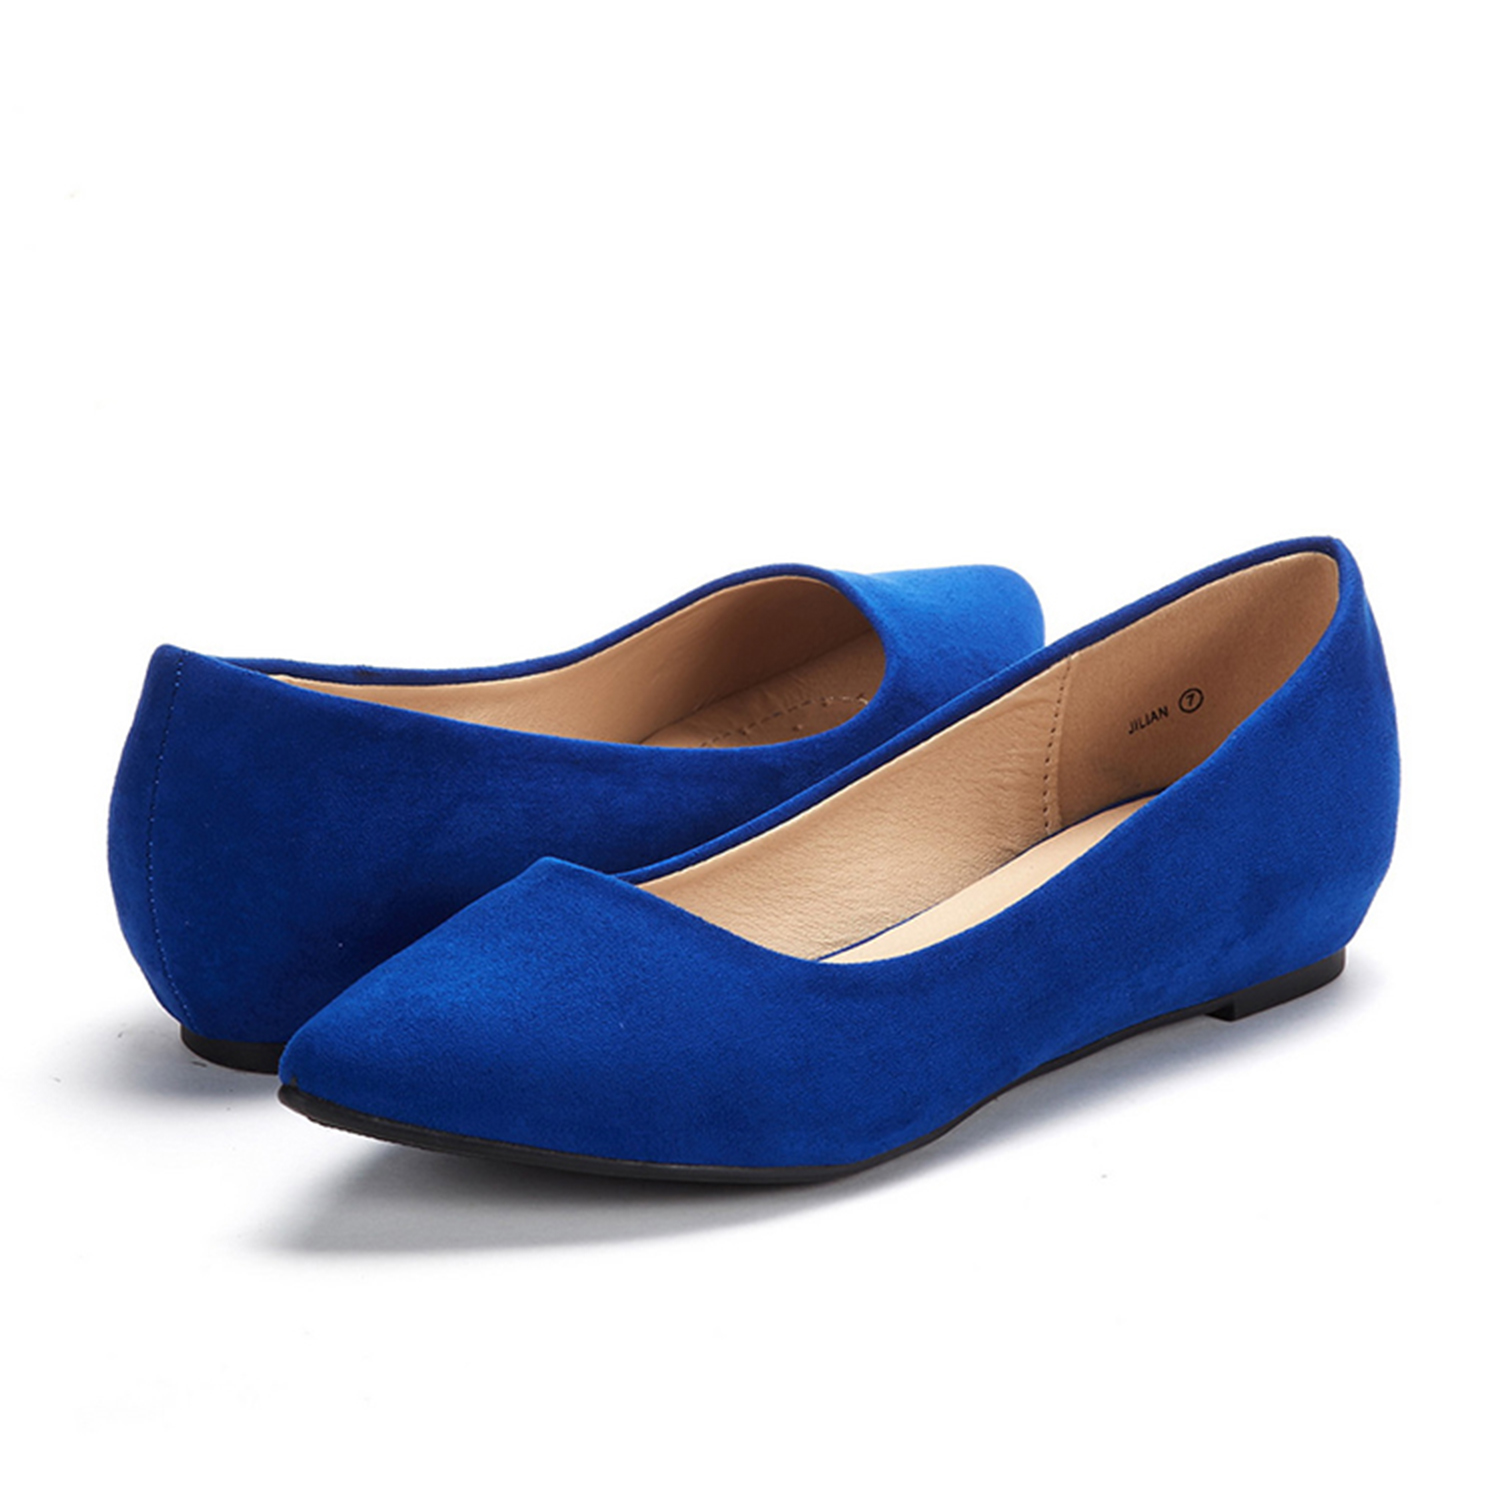 DREAM-PAIRS-Women-Low-Wedge-Flats-Ladies-Pointed-Toe-Slip-On-Comfort-Flat-Shoes thumbnail 11